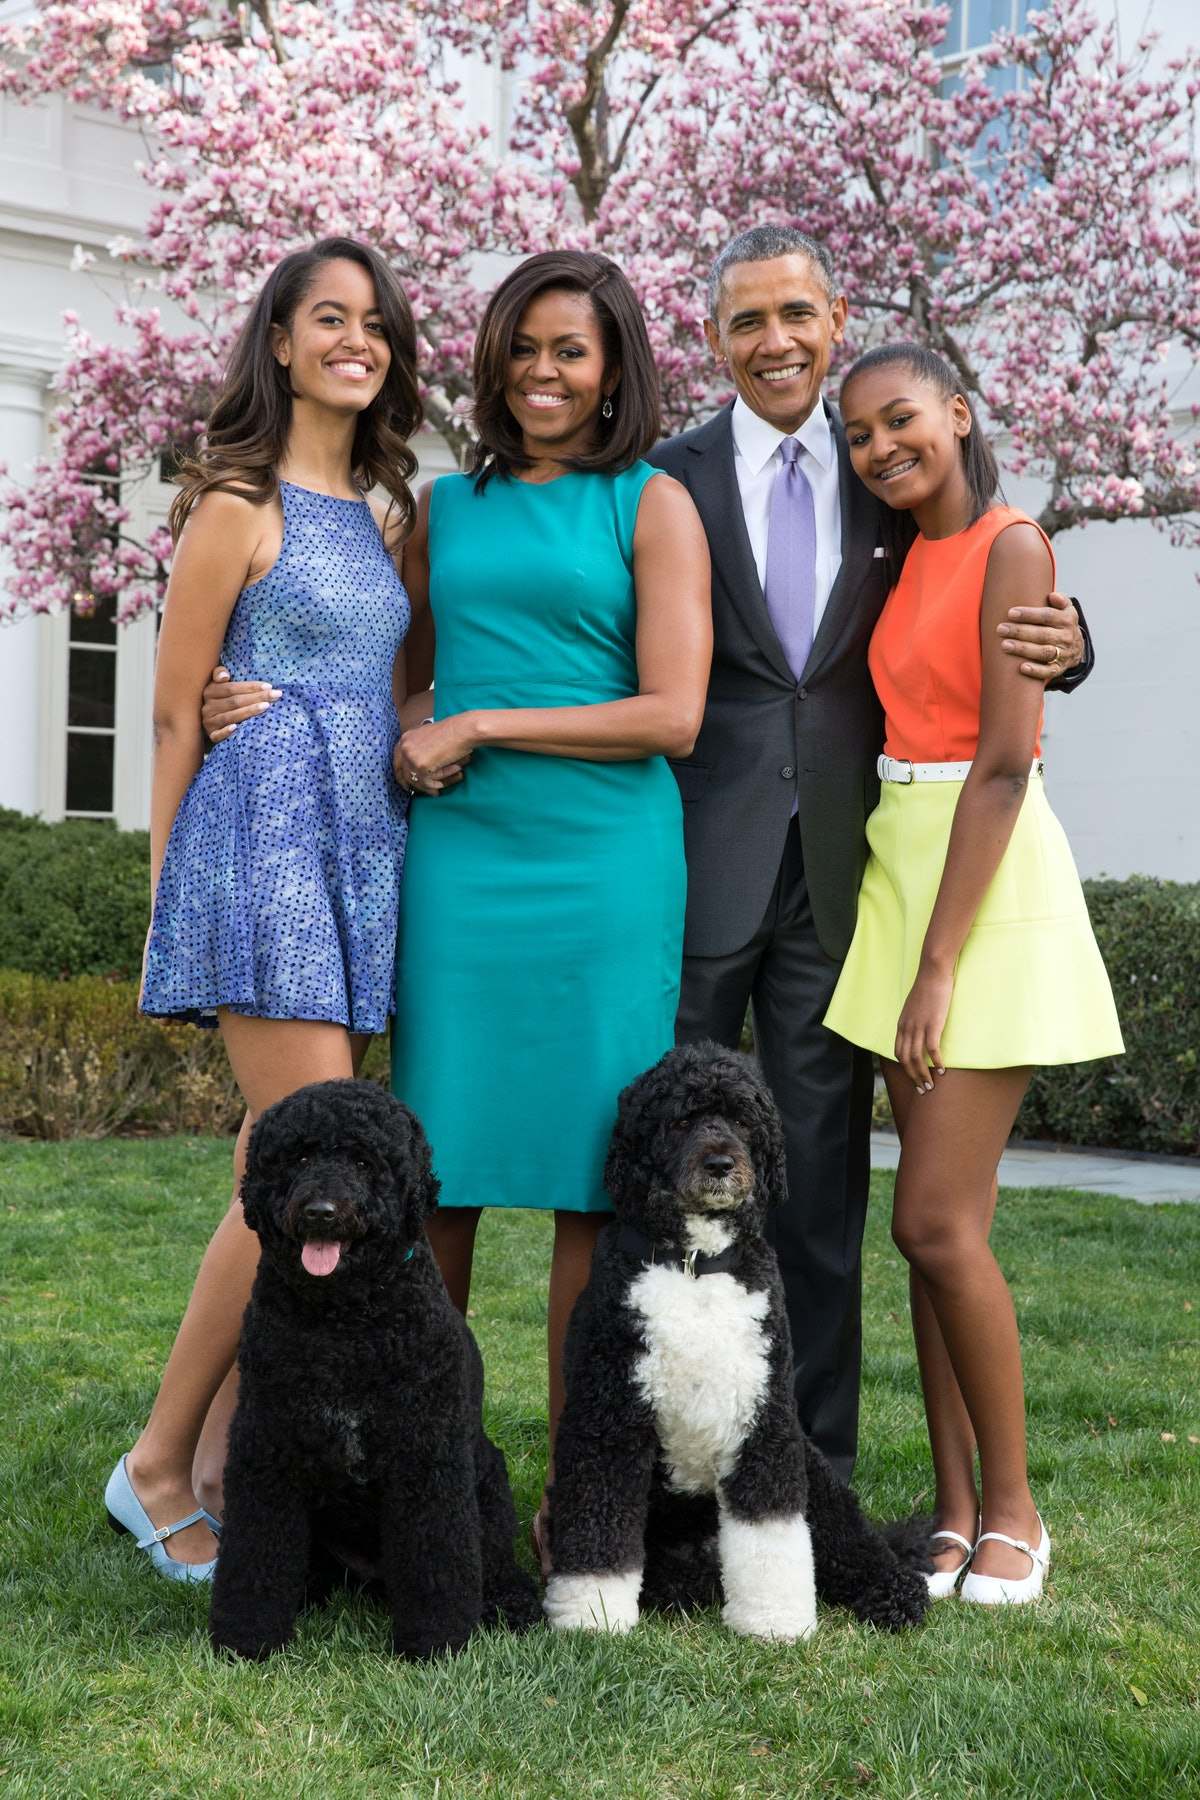 WASHINGTON, DC - APRIL 05: U.S. President Barack Obama, First Lady Michelle Obama, and daughters Mal...